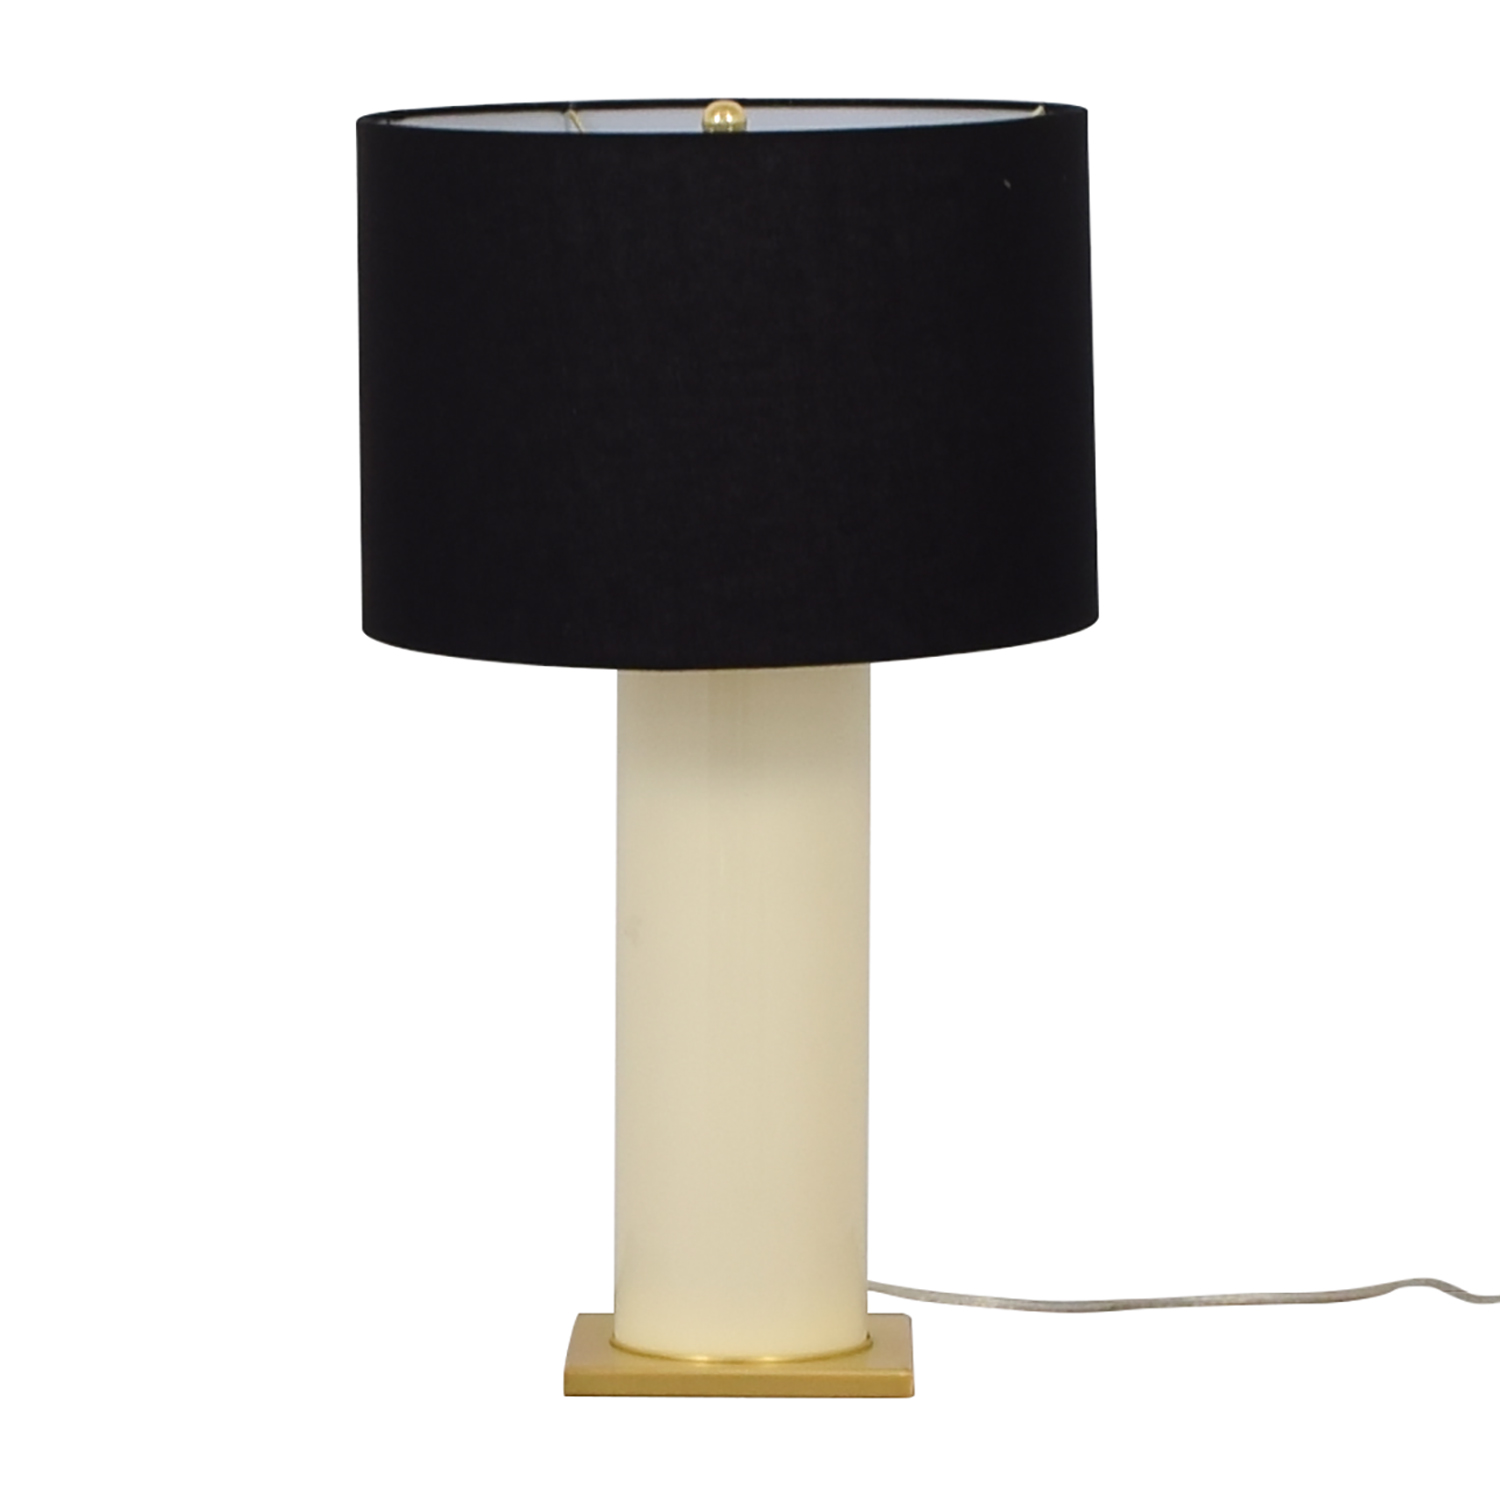 Kate Spade Black Gold and Creme Table Lamp sale